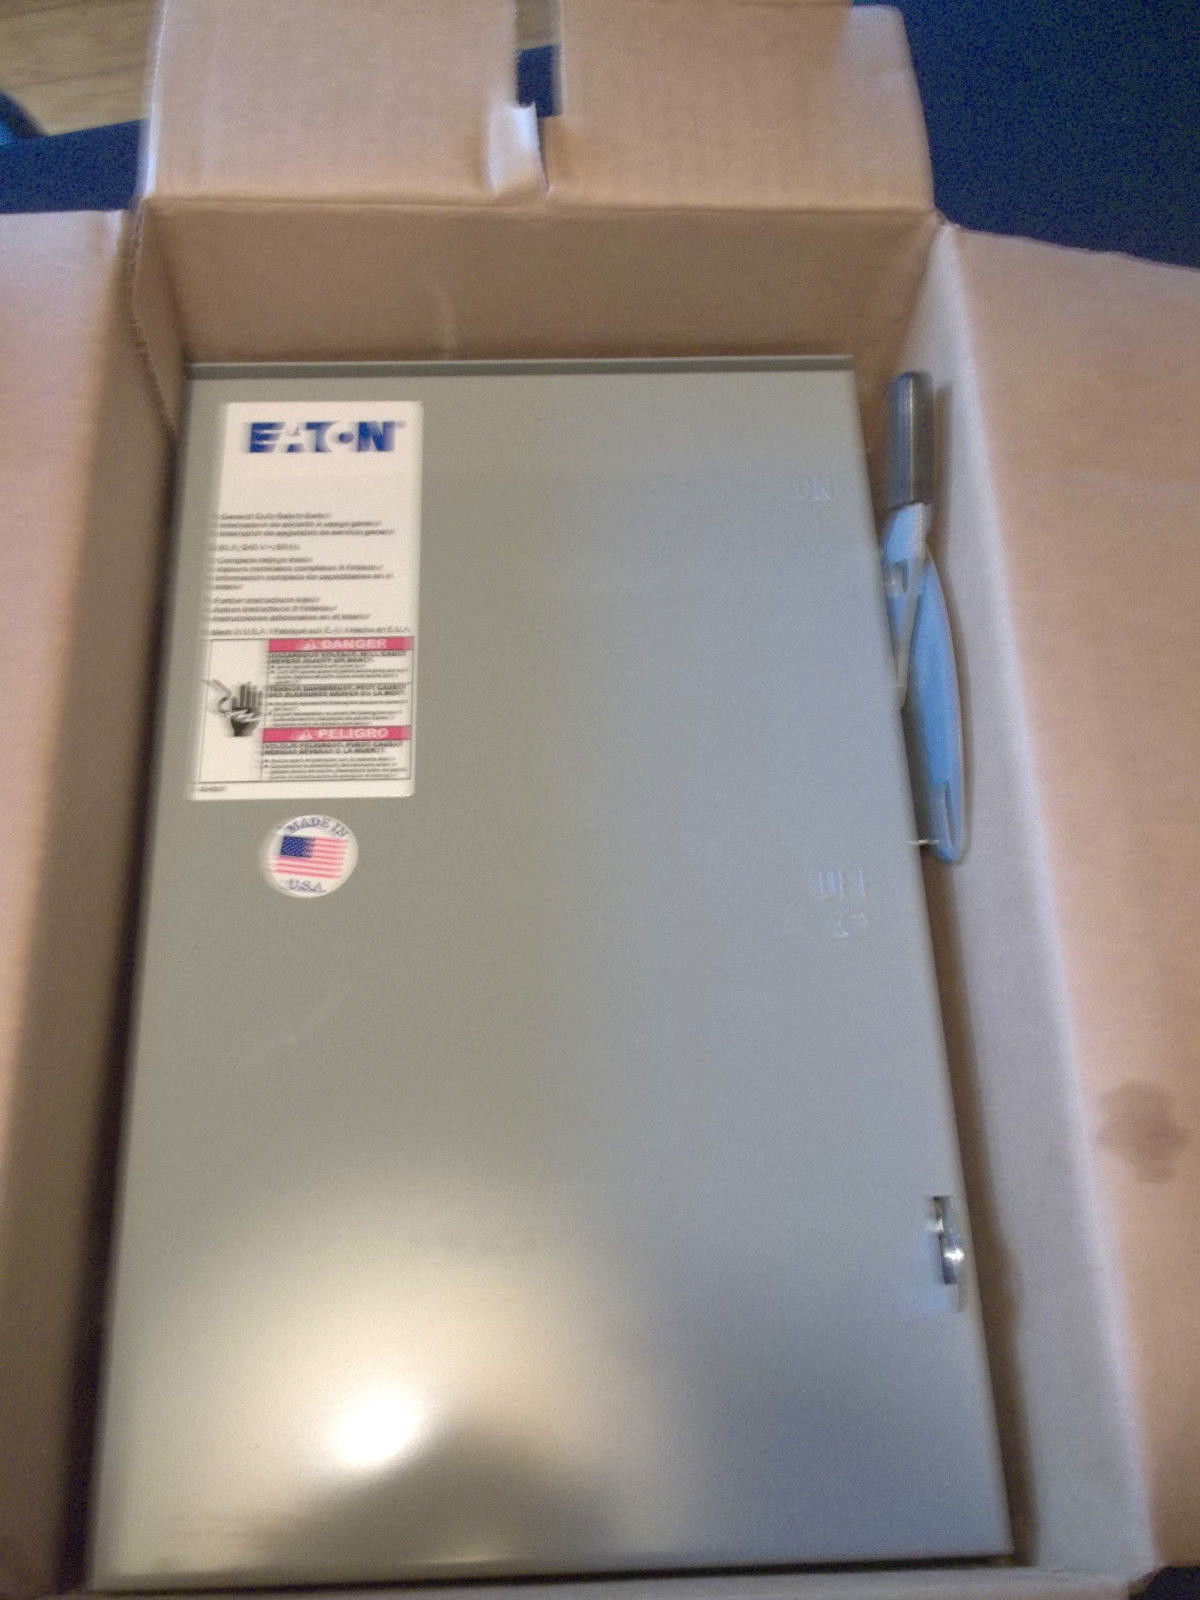 Eaton Safety Switch: 2 listings